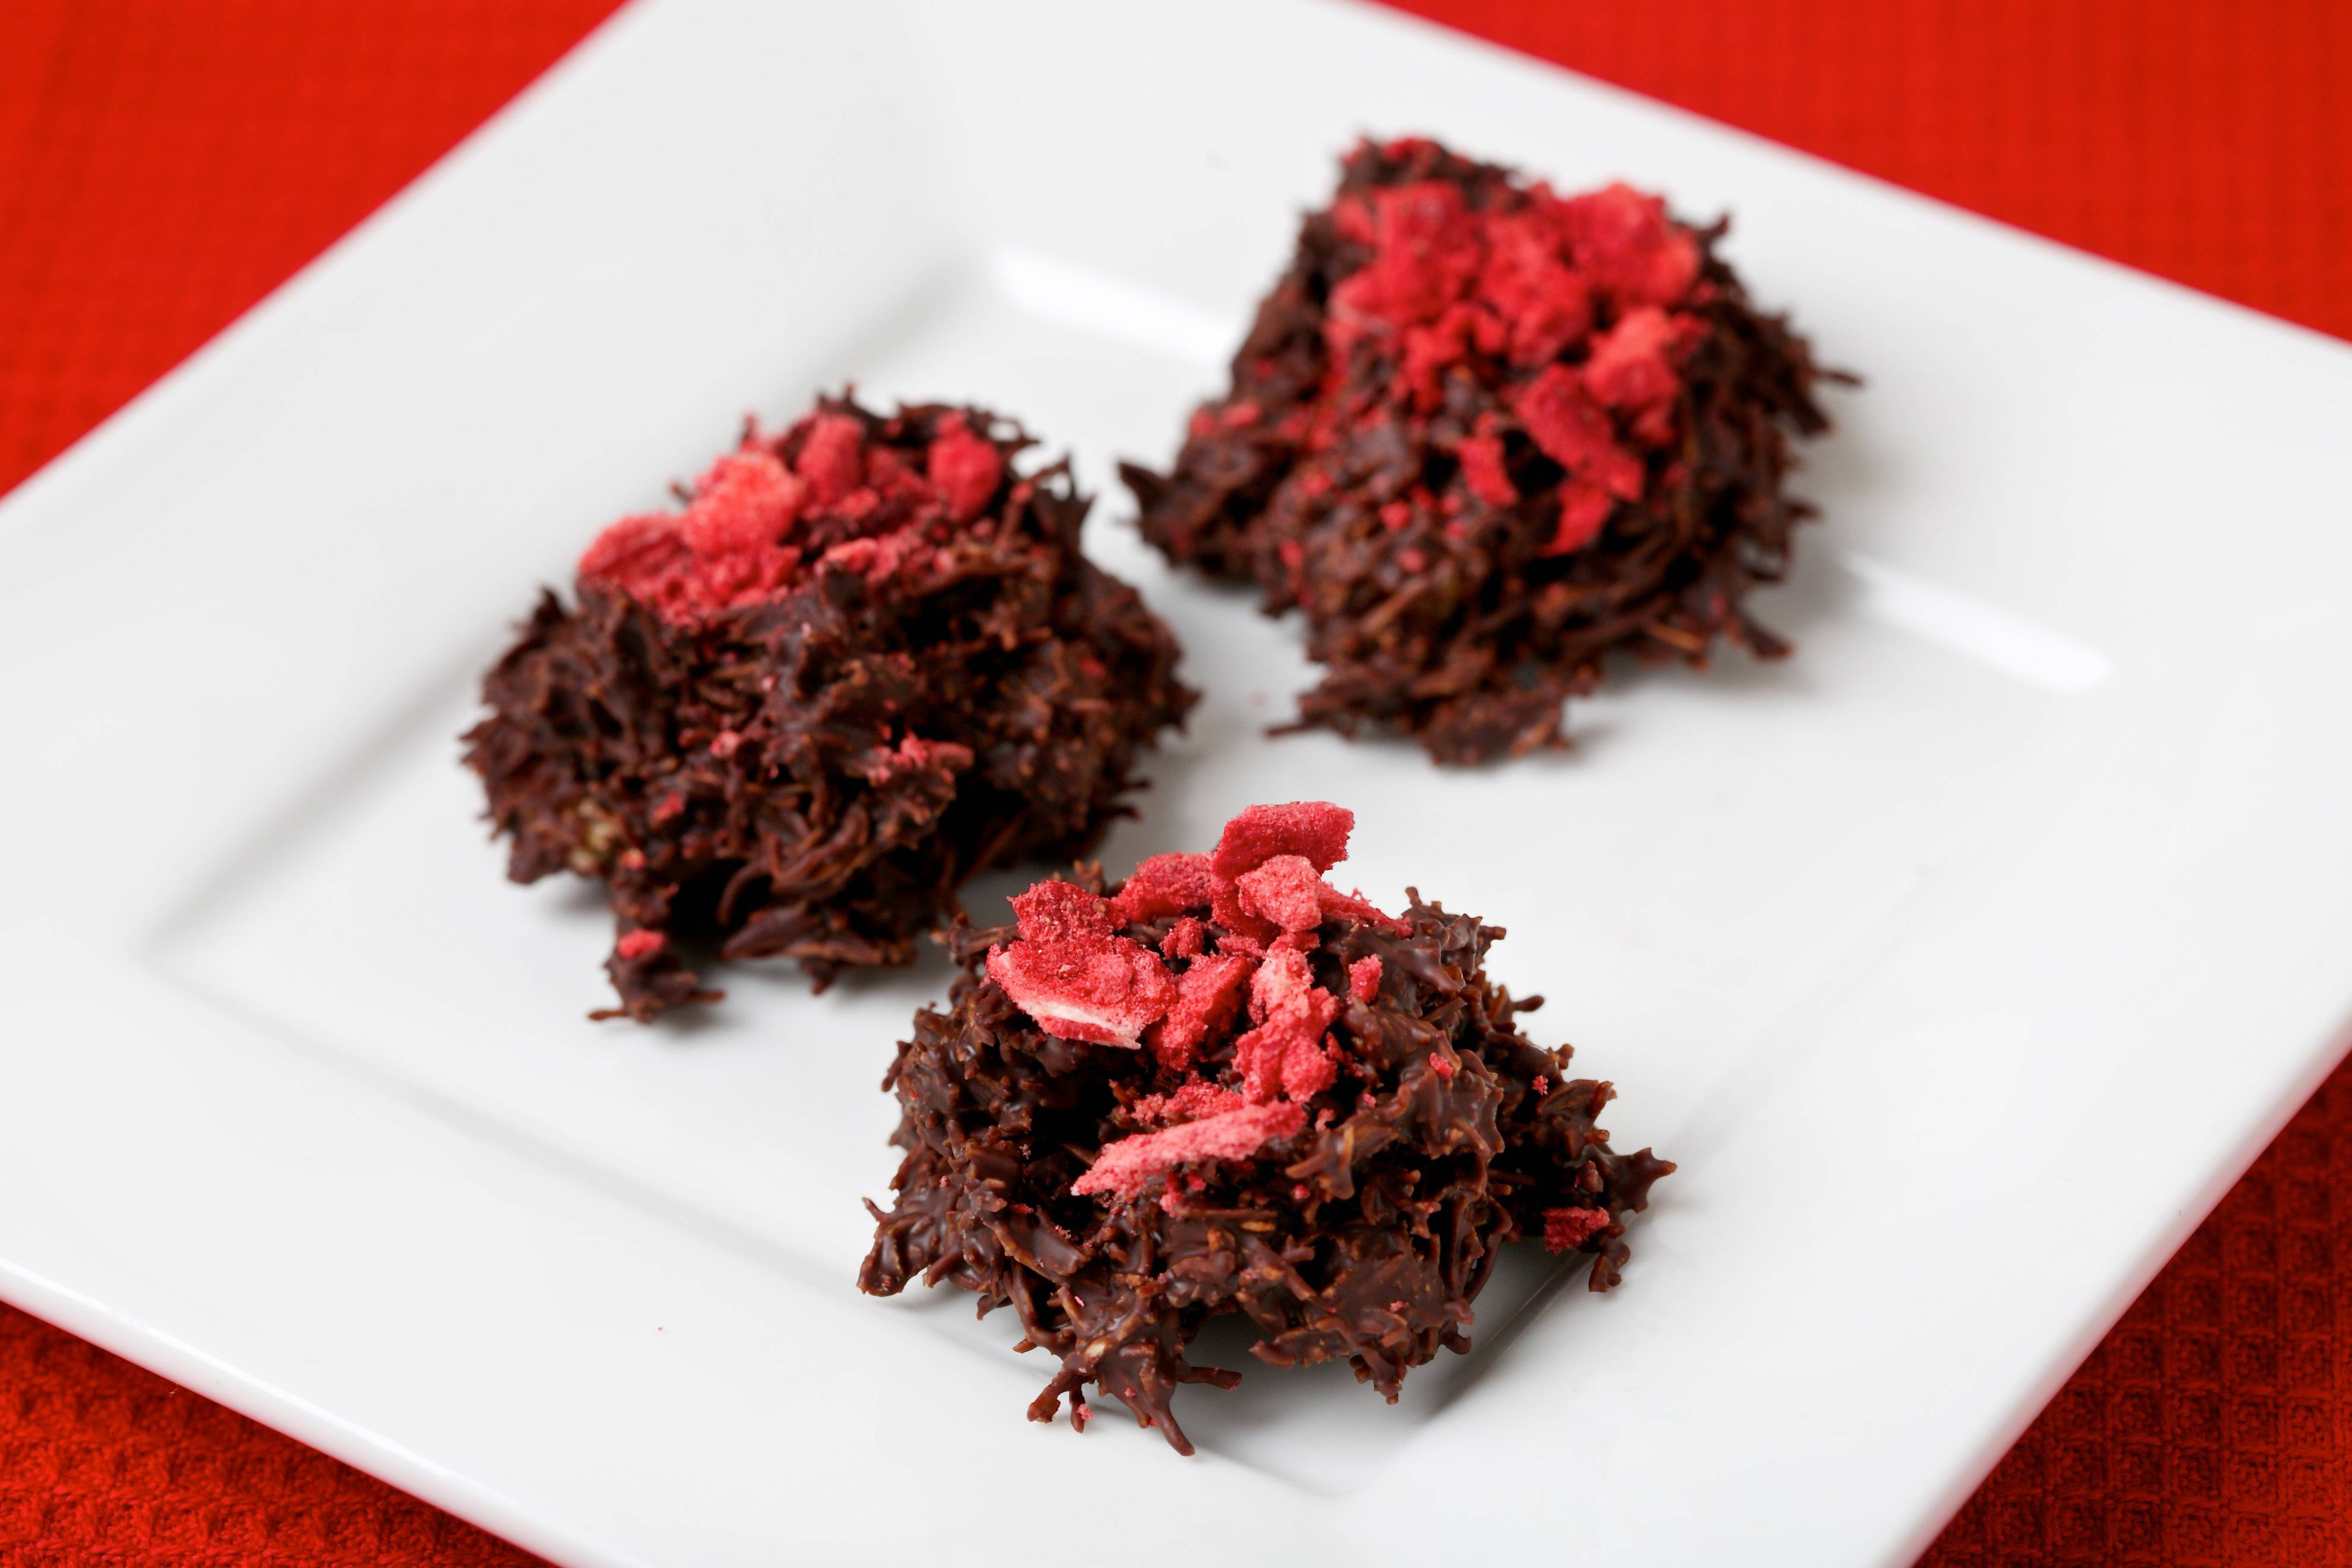 Chocolate Haystacks With Crushed Strawberries. These festive treats taste completely indulgent, but they are pretty healthful as candy goes.